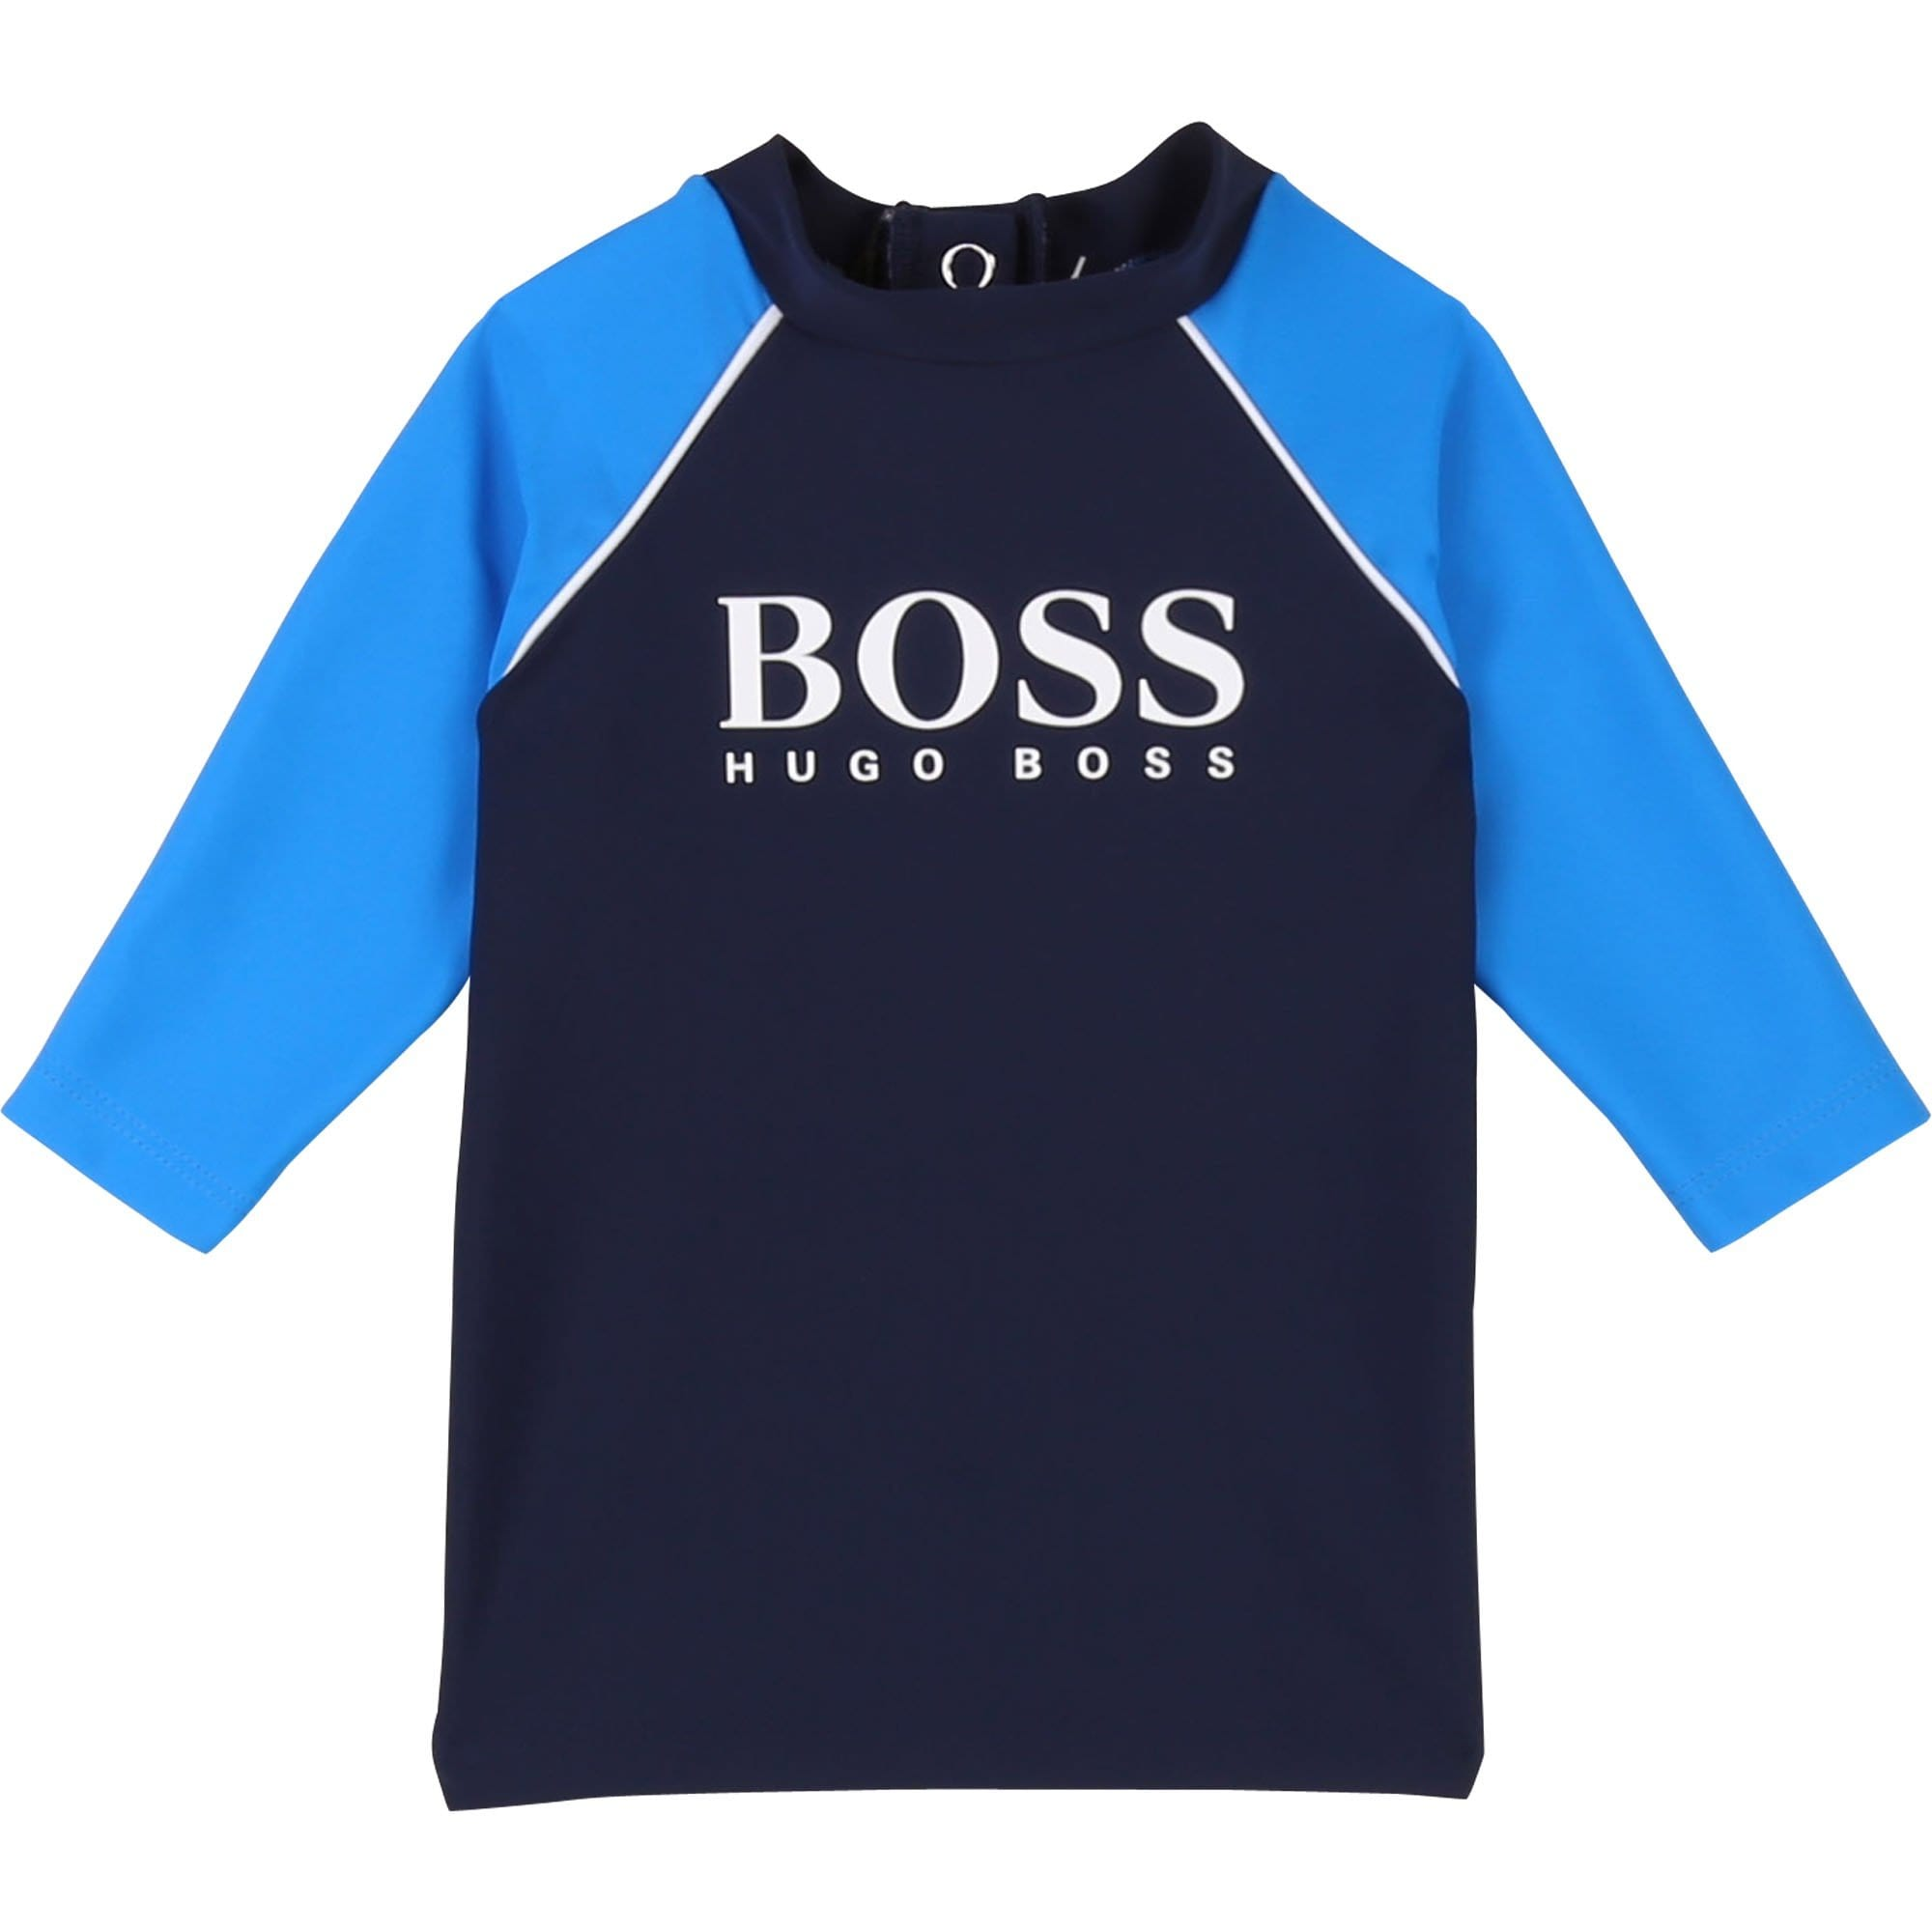 Hugo Boss Long Sleeve Rashie J05789/849